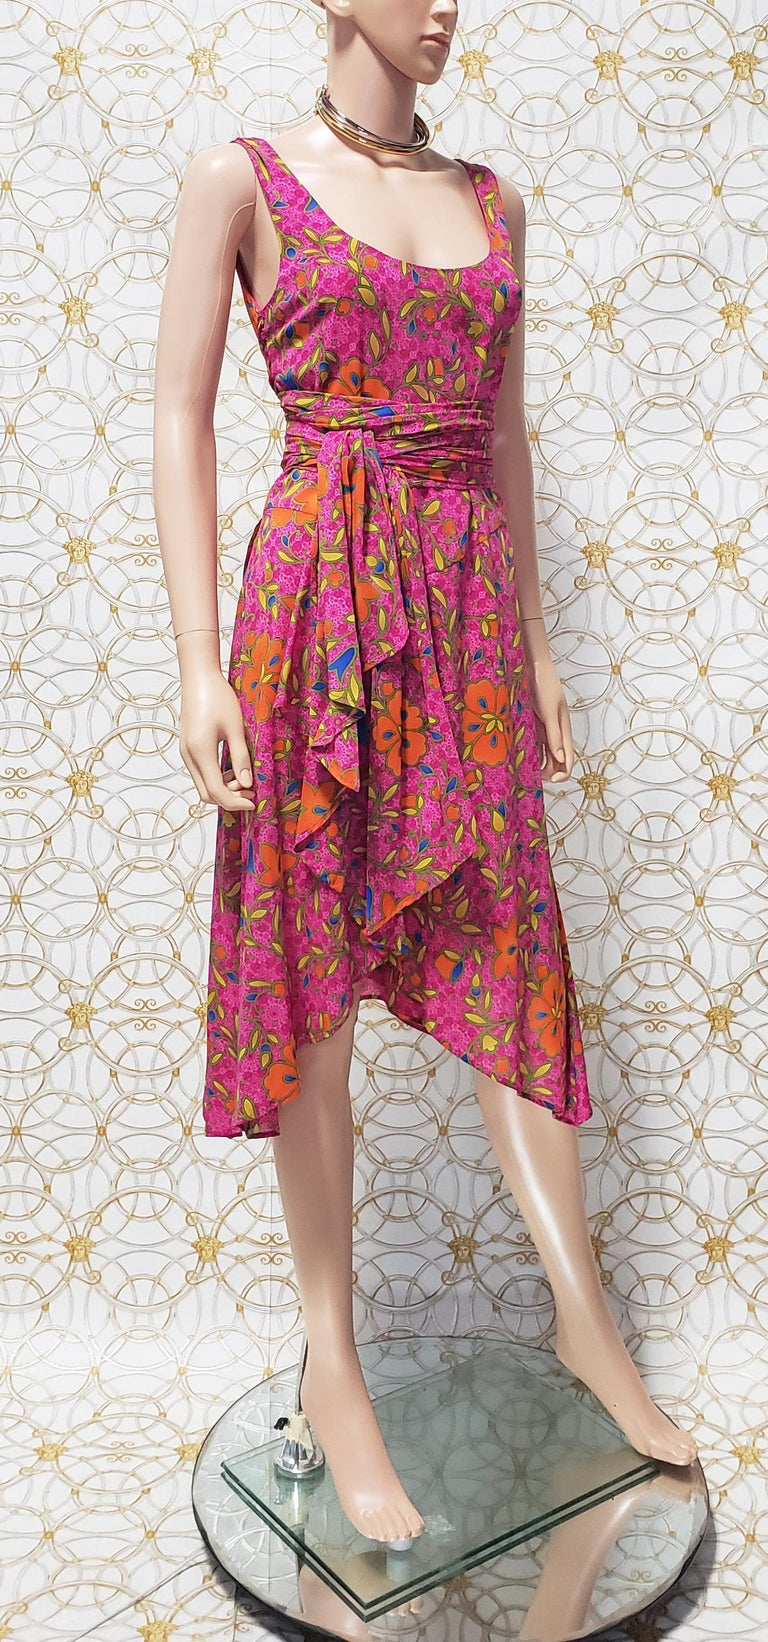 NEW VERSACE PINK FLORAL PRINT SILK Dress 44 - 10 For Sale 3